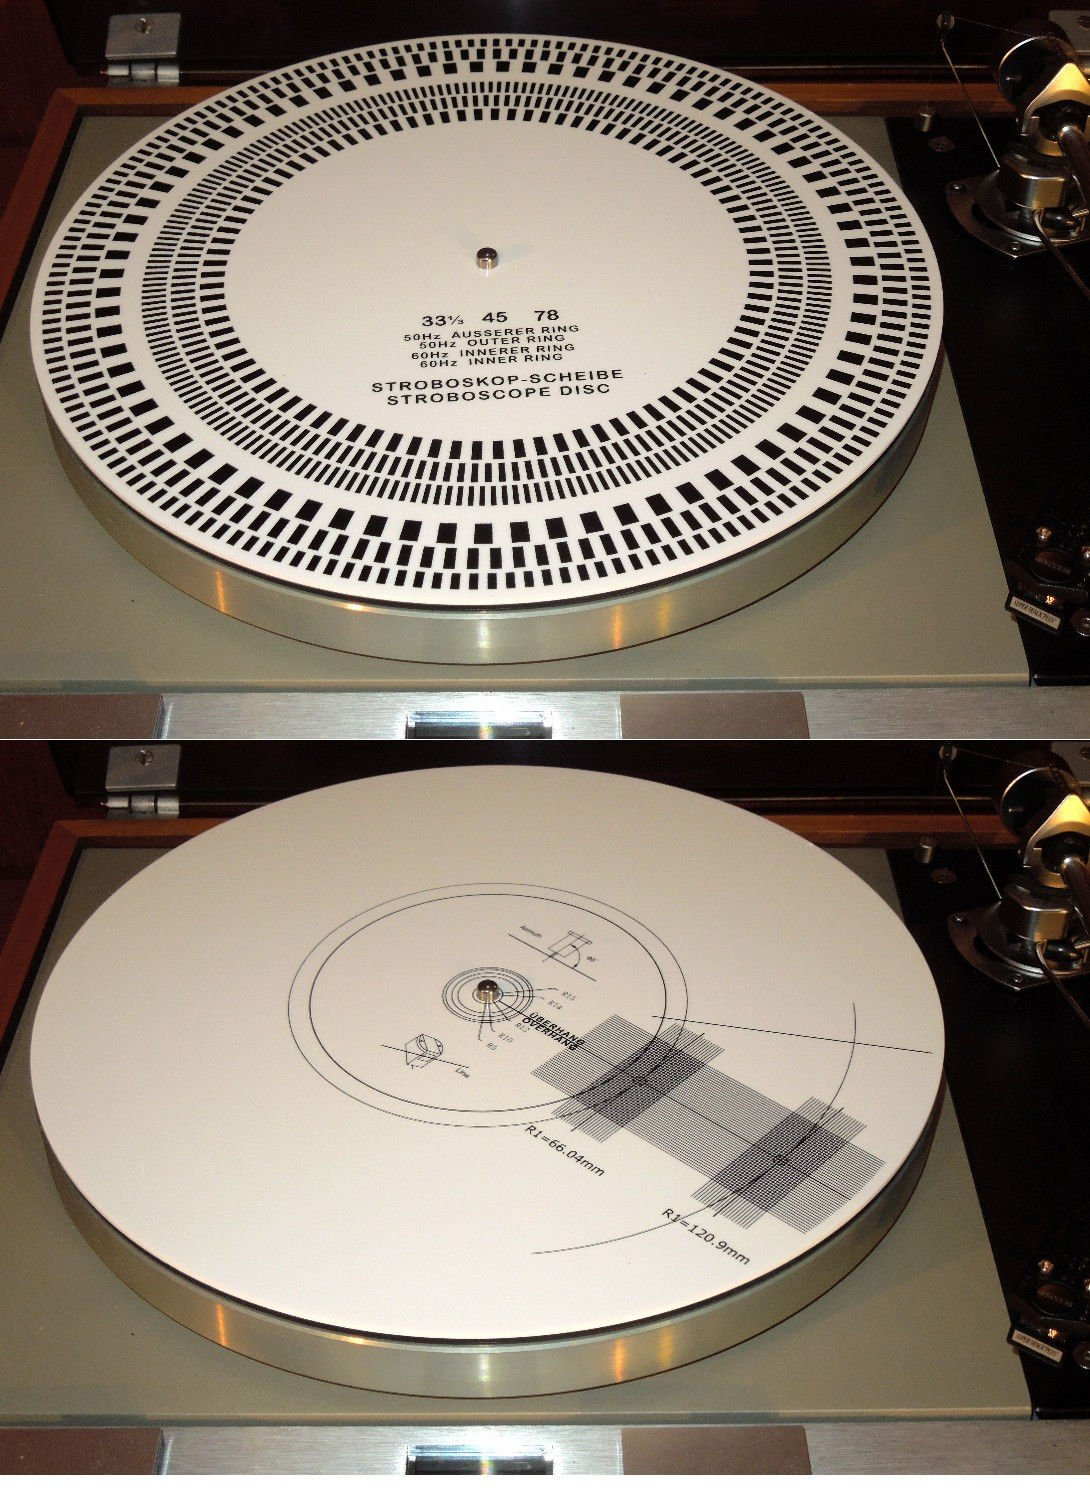 Acrylic Turntable Mat Cartridge Alignment Protractor Strobe Disc Stroboscope by PUREST AUDIO